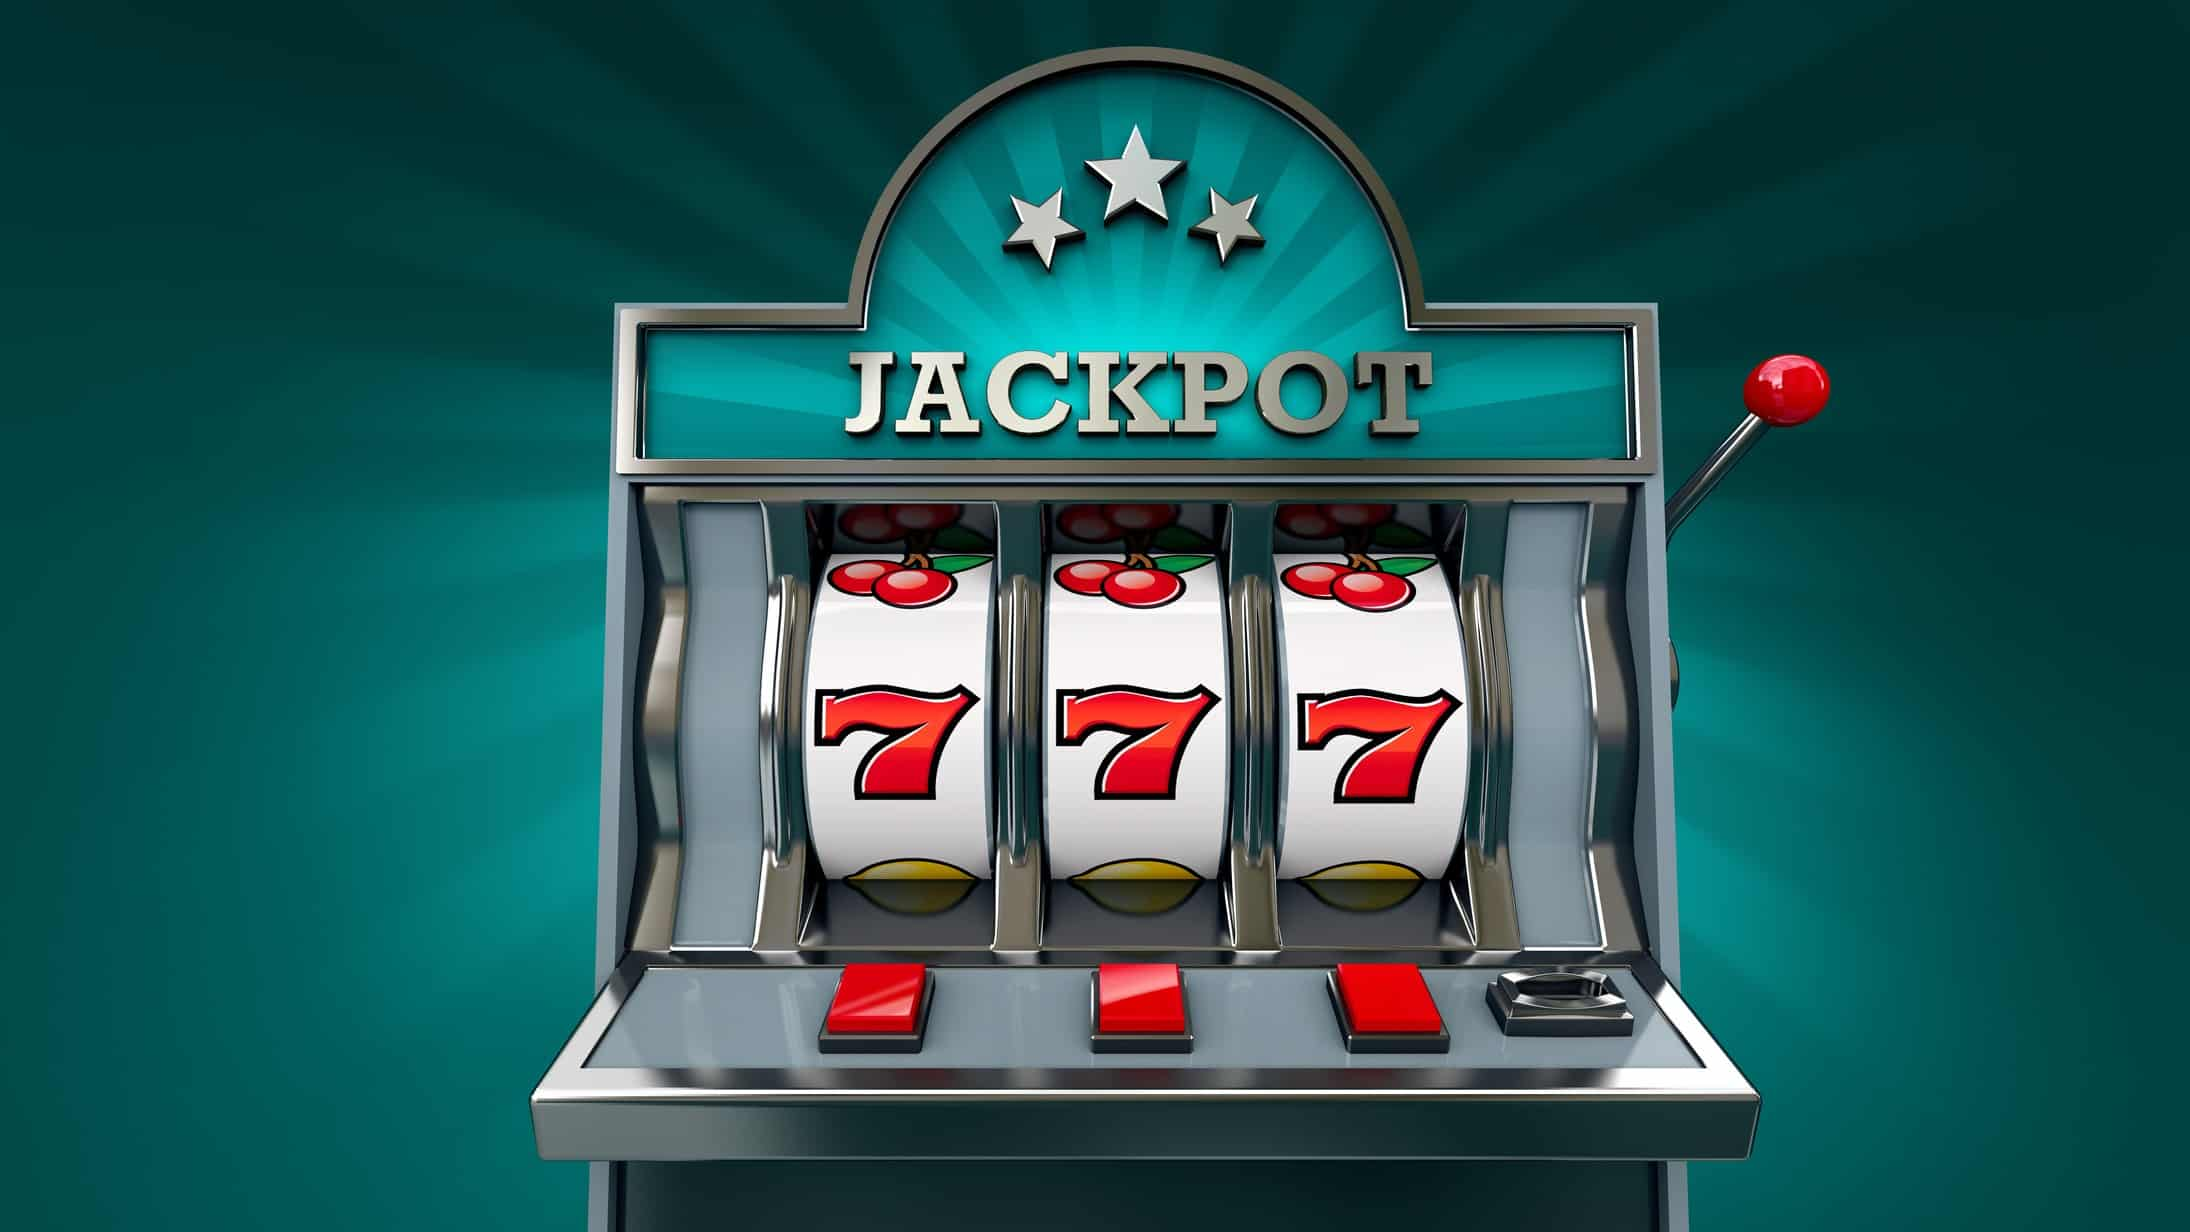 gaming asx share price rise represented by slot machine paying jackpot